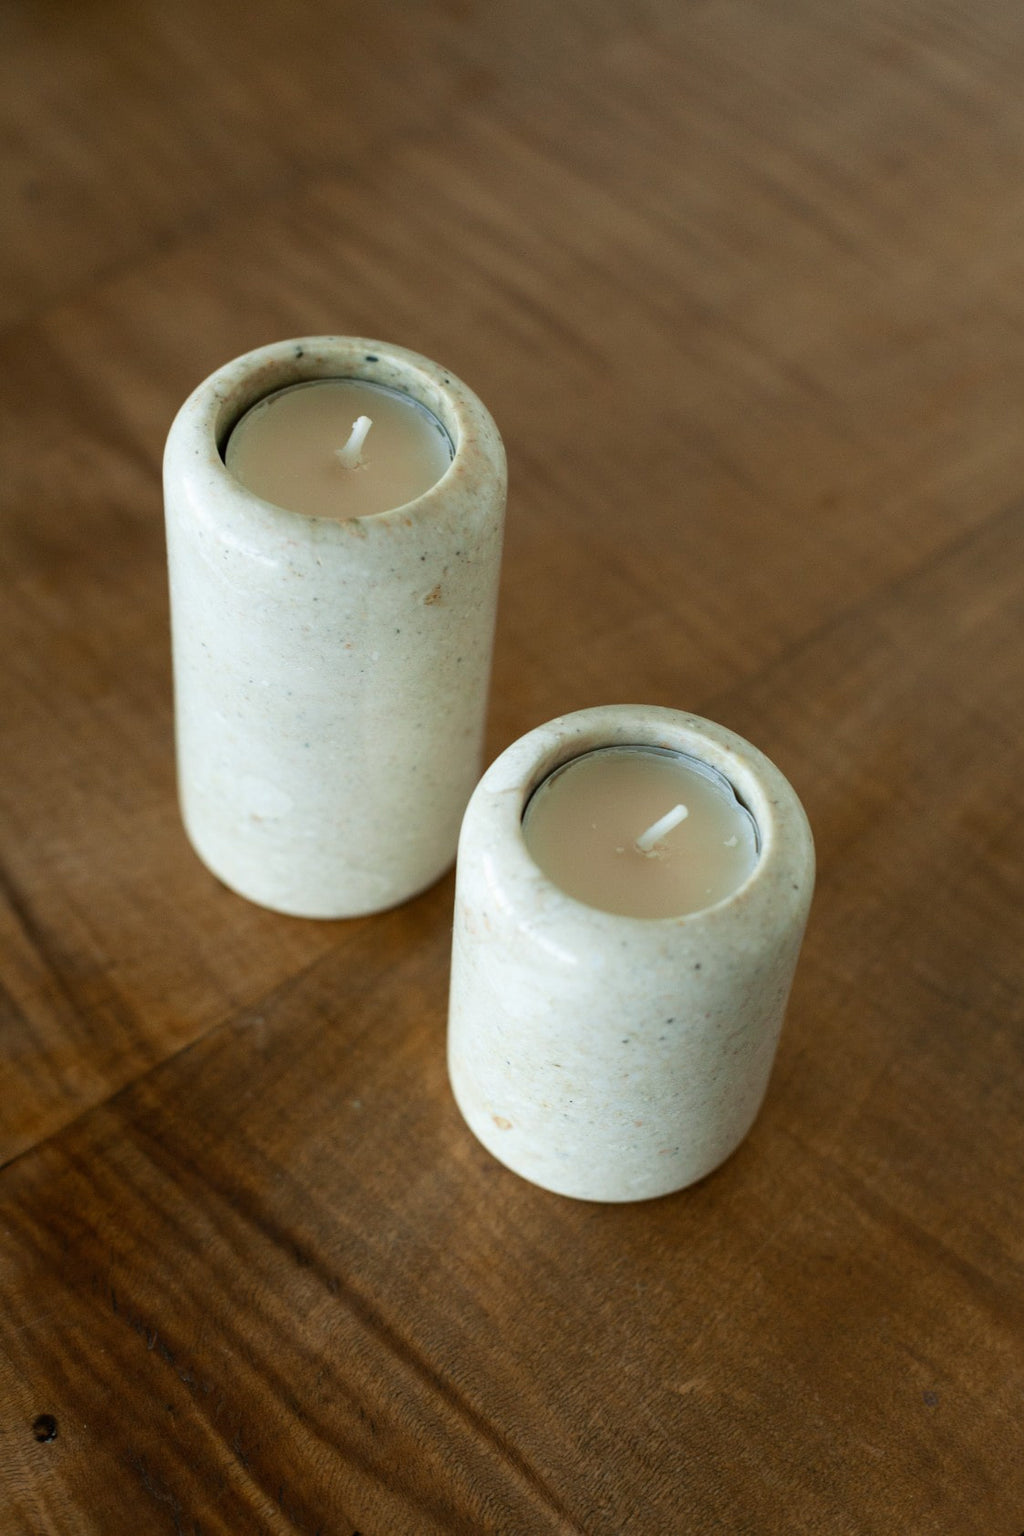 Set of 2 Cream Stone Tealight Holders - Fallow Home.